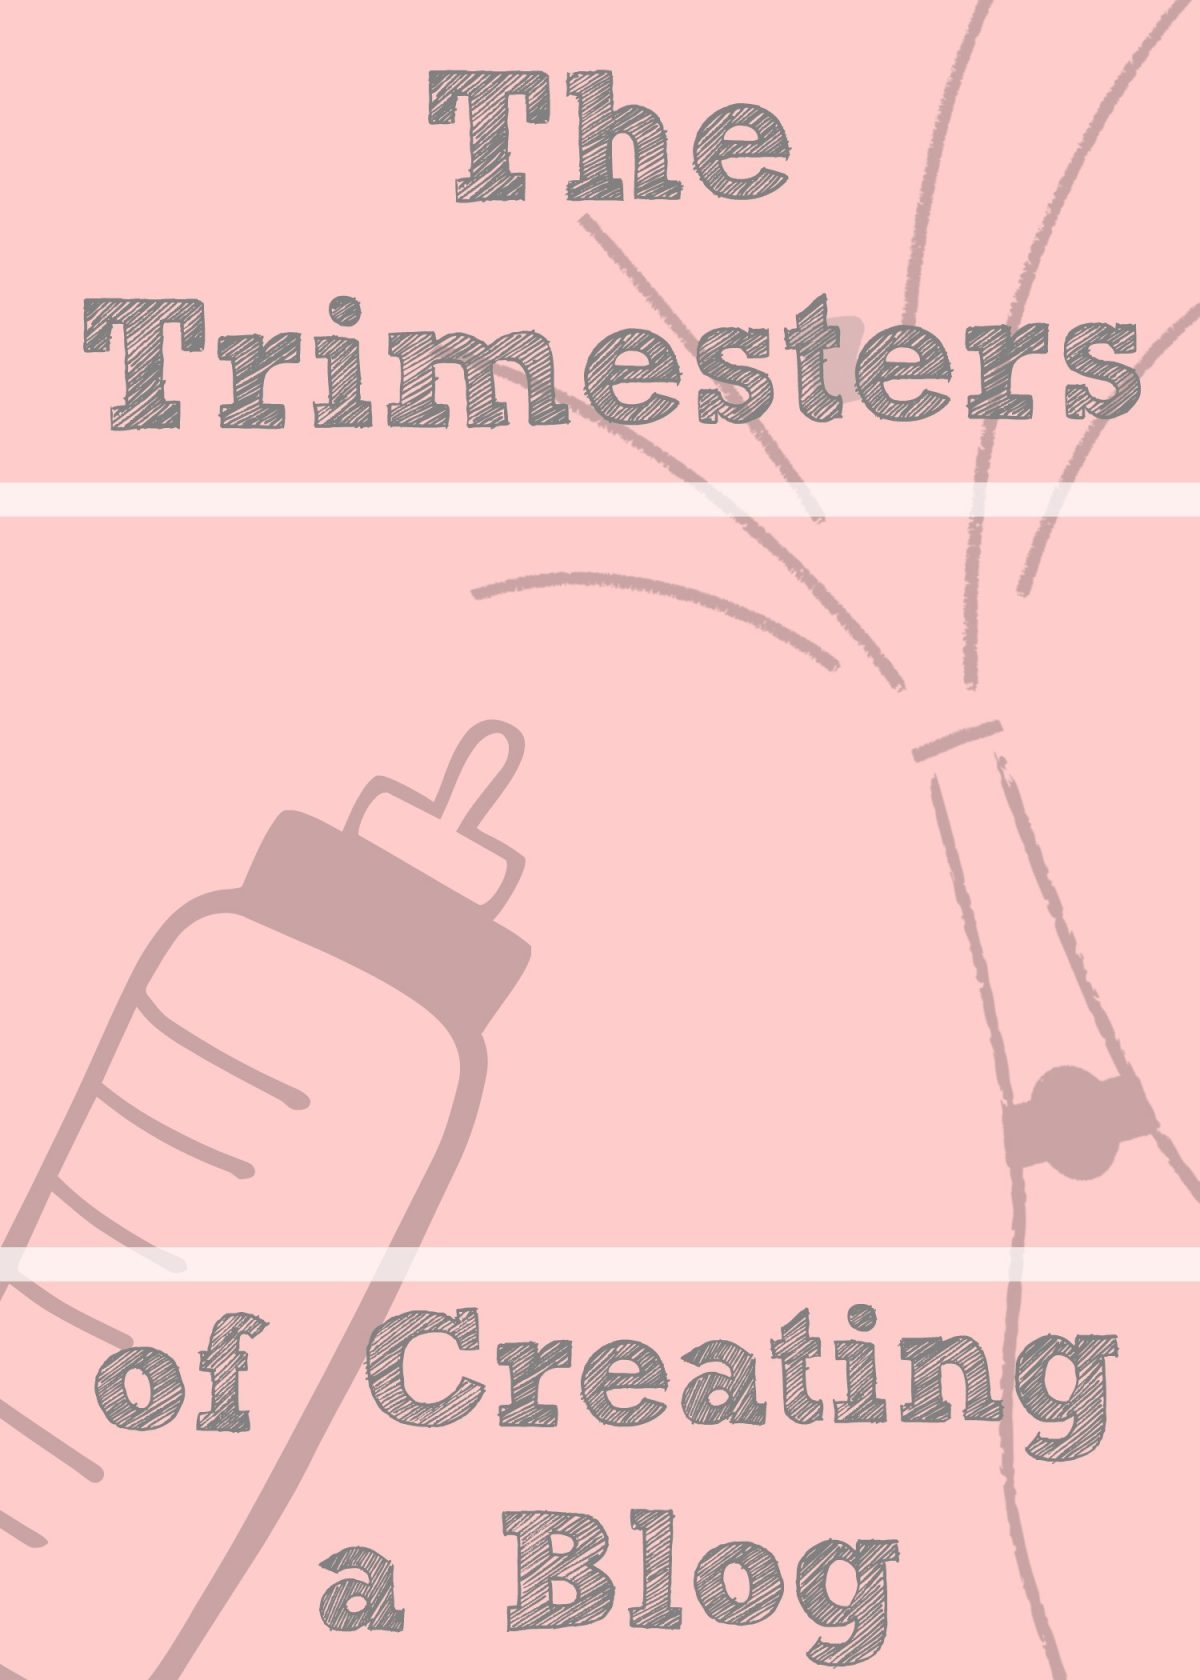 Blogging by Trimester